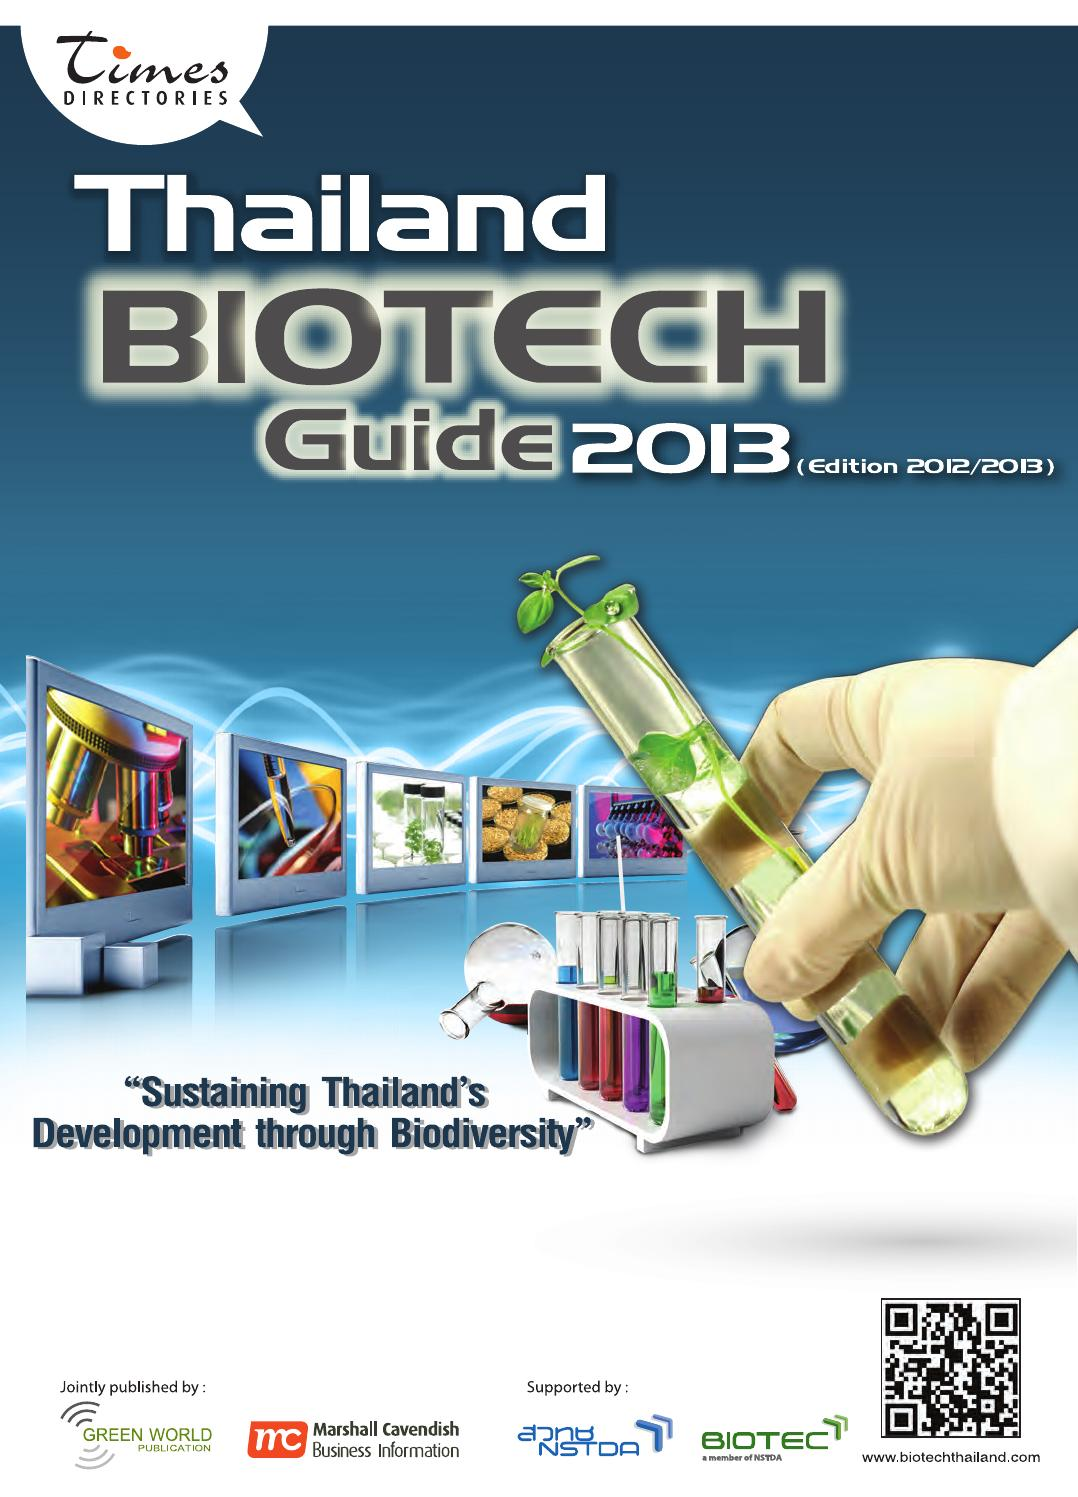 Thailand Biotech Guide 2013 By Green World Publication Company 2476 Smartlabs Dimmer Switch Wiring Diagram Limited Issuu